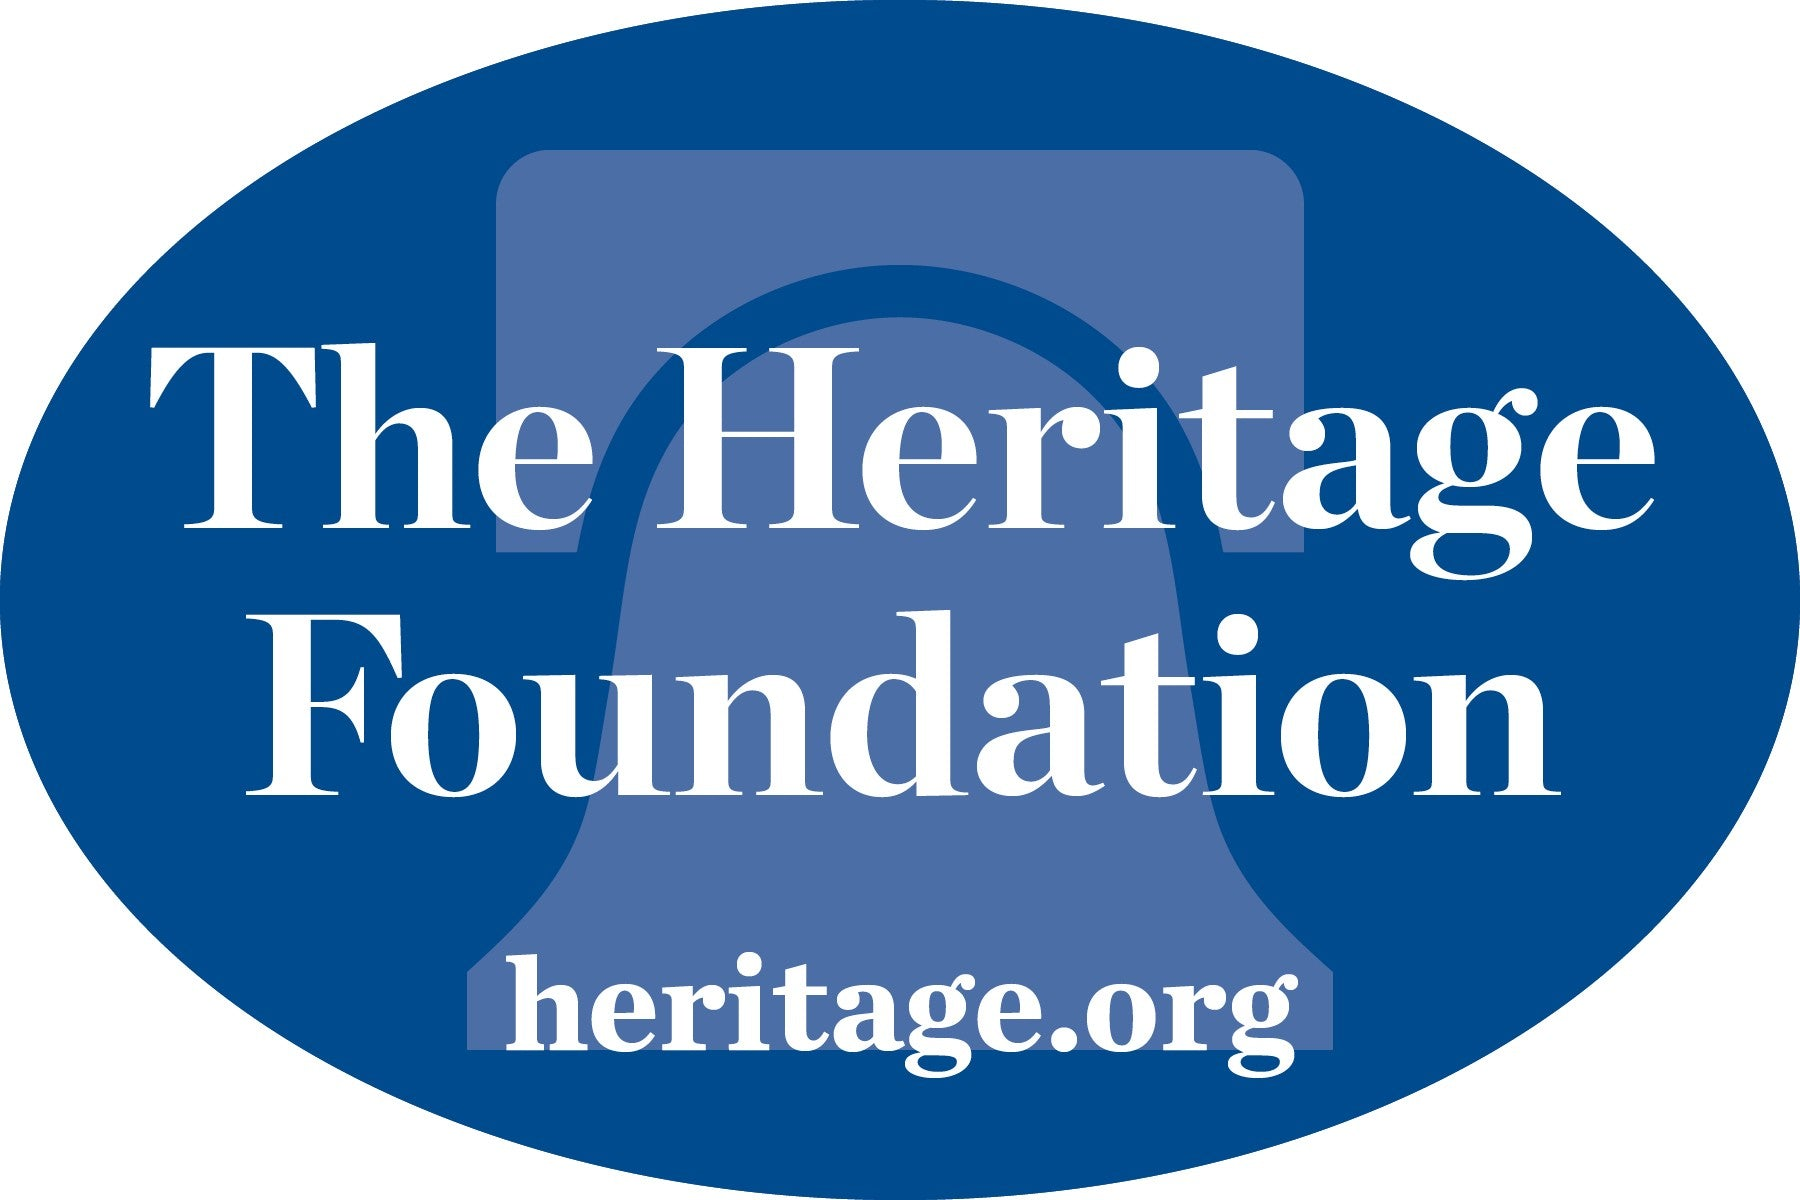 The Heritage Foundation Window Decal – Shop The Heritage Foundation